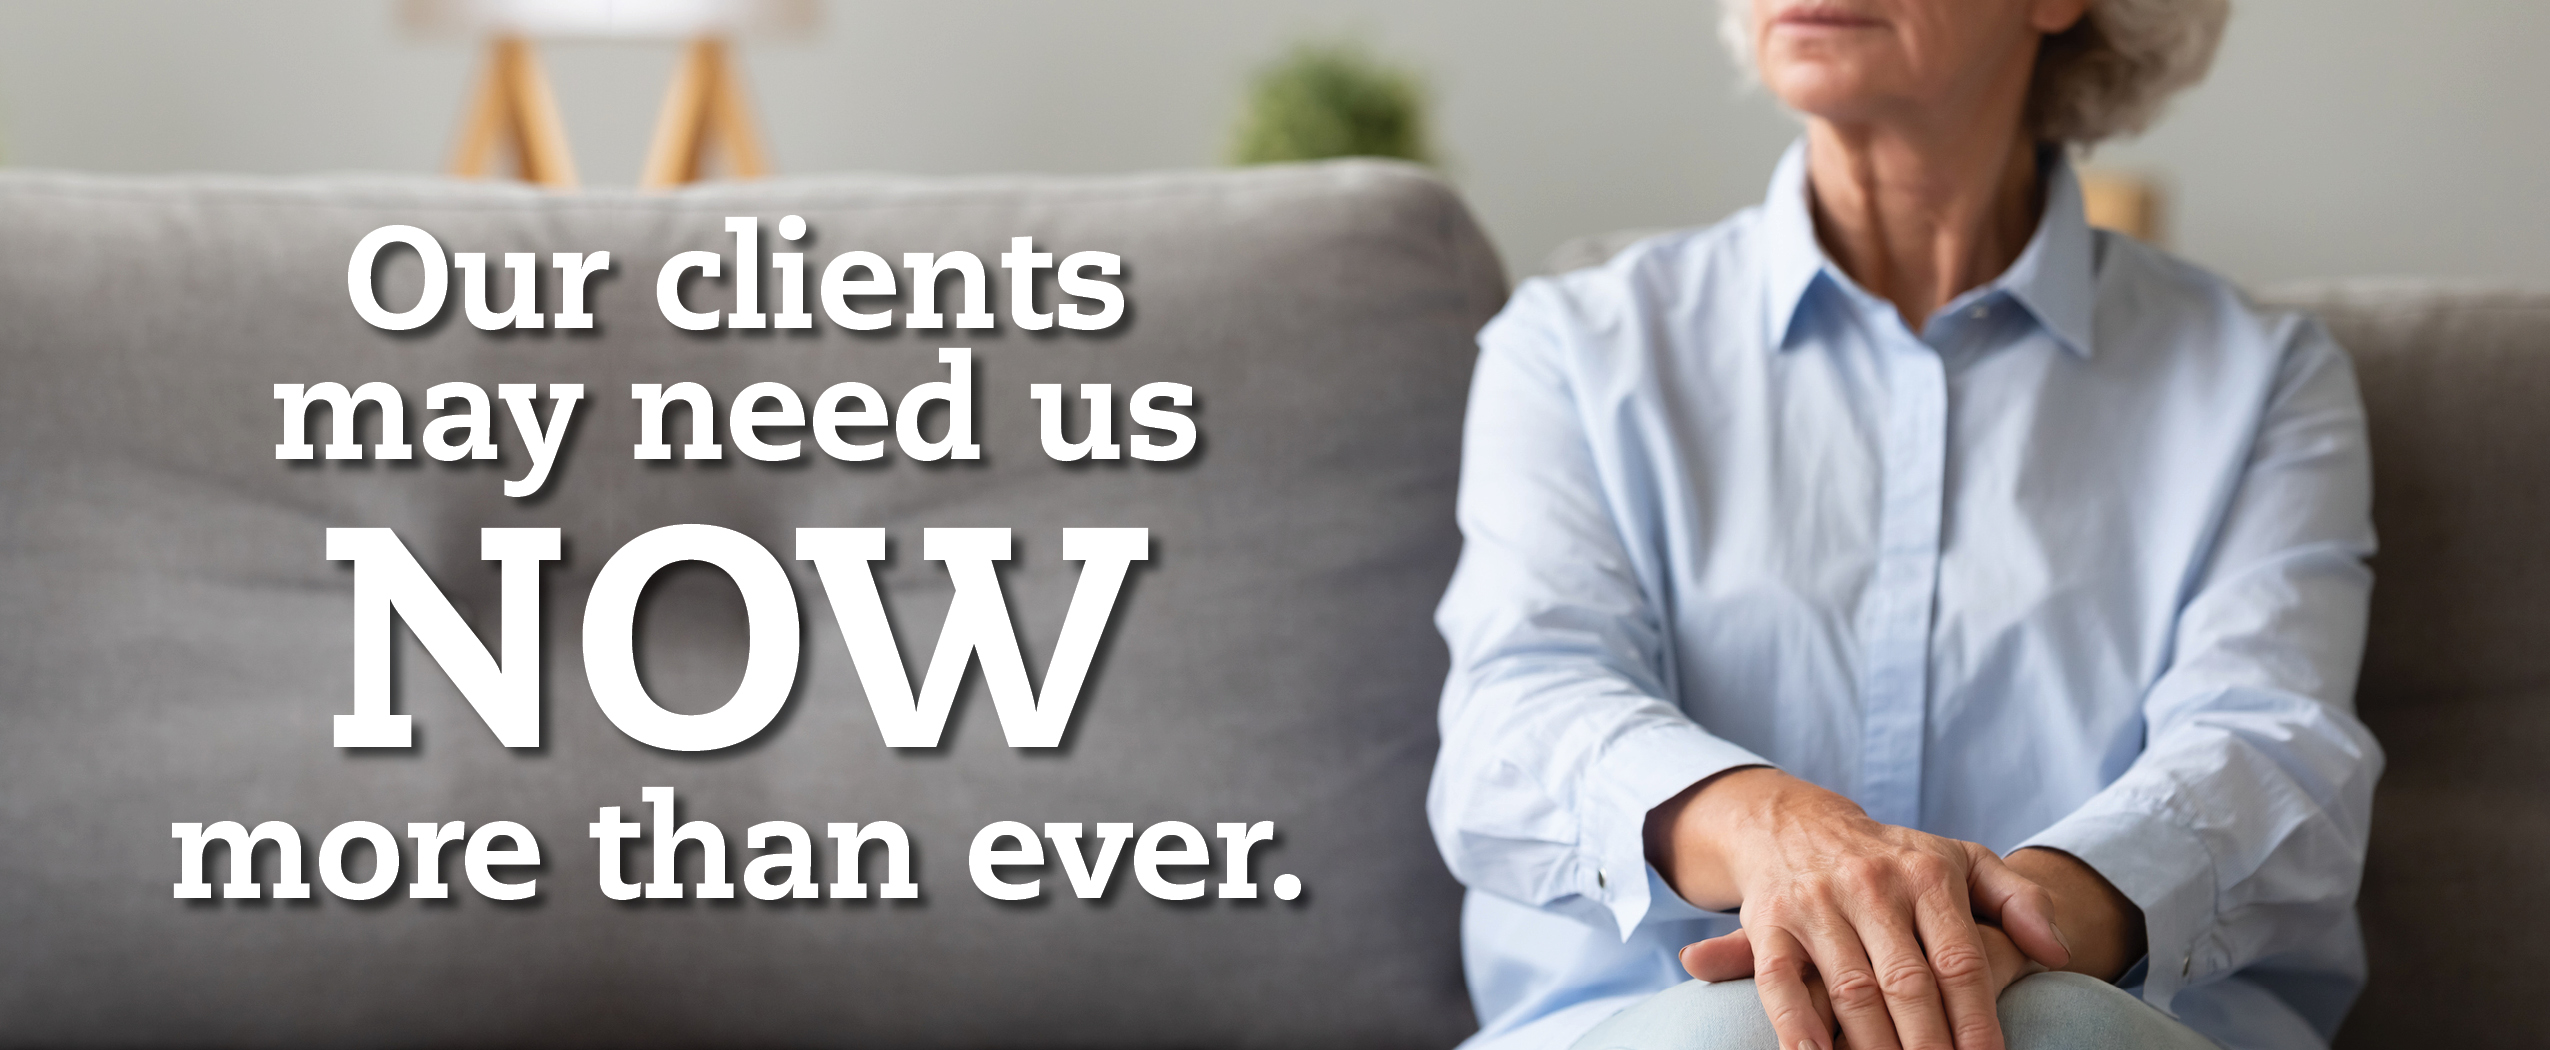 Our clients may need us now more than ever.